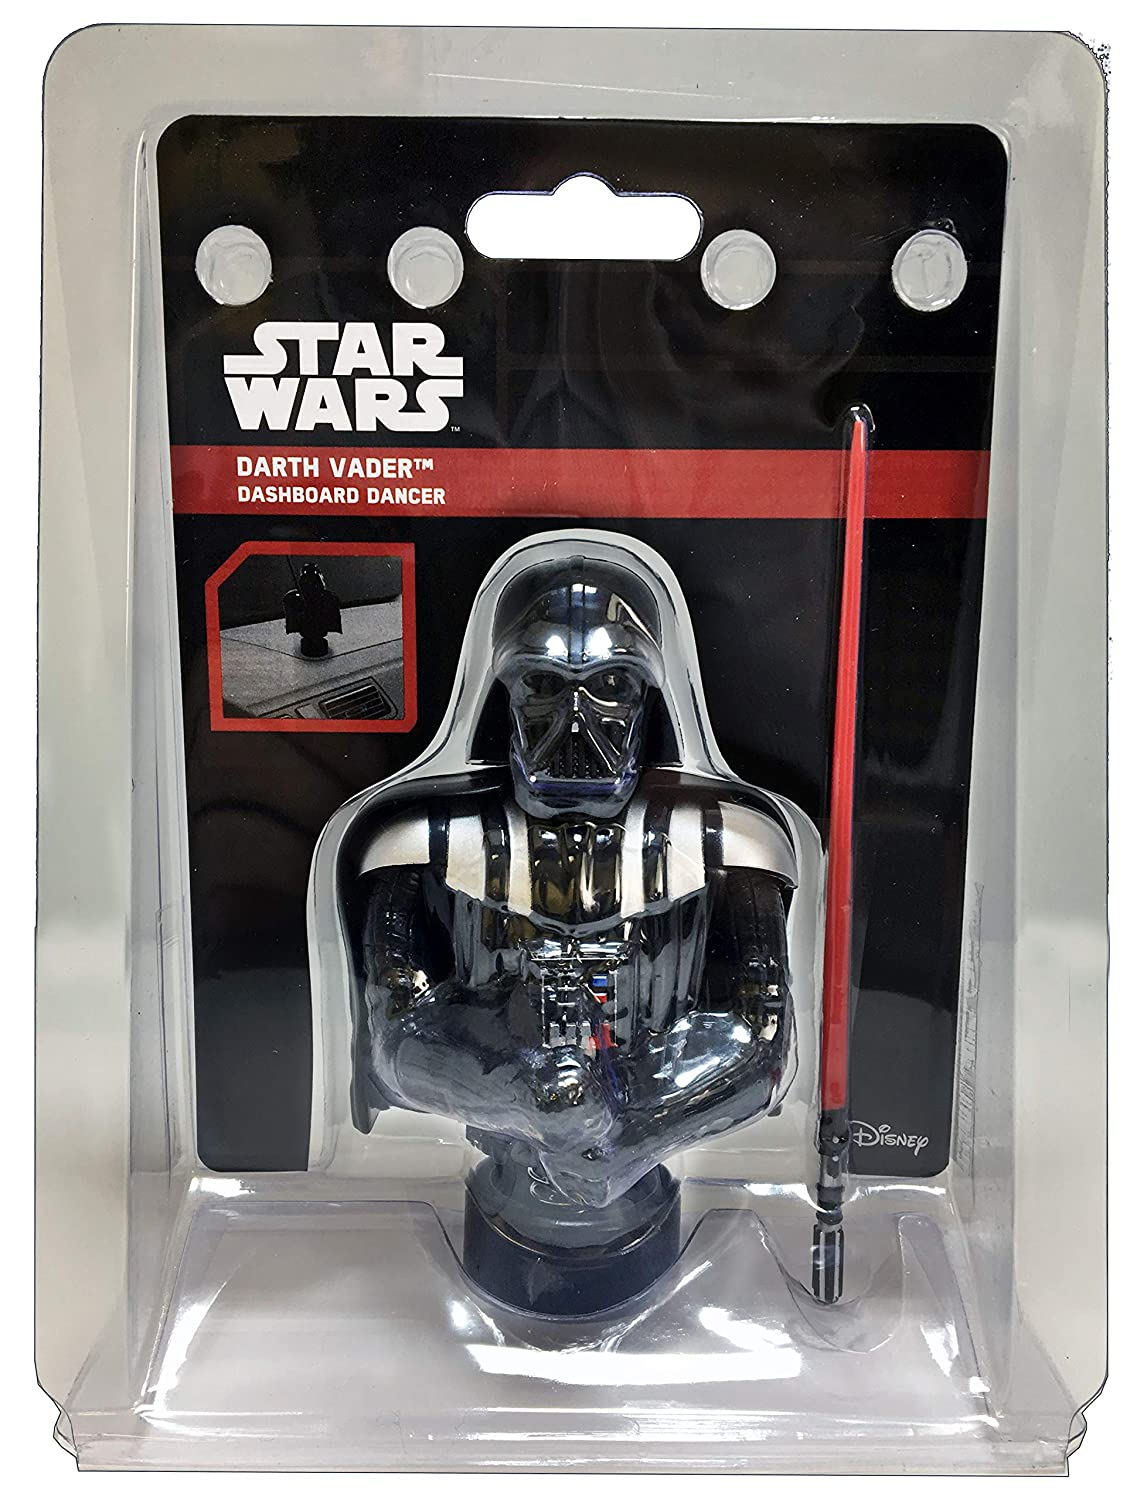 CHROMA 48028 Black Darth Vader Dashboard Auto Ornament